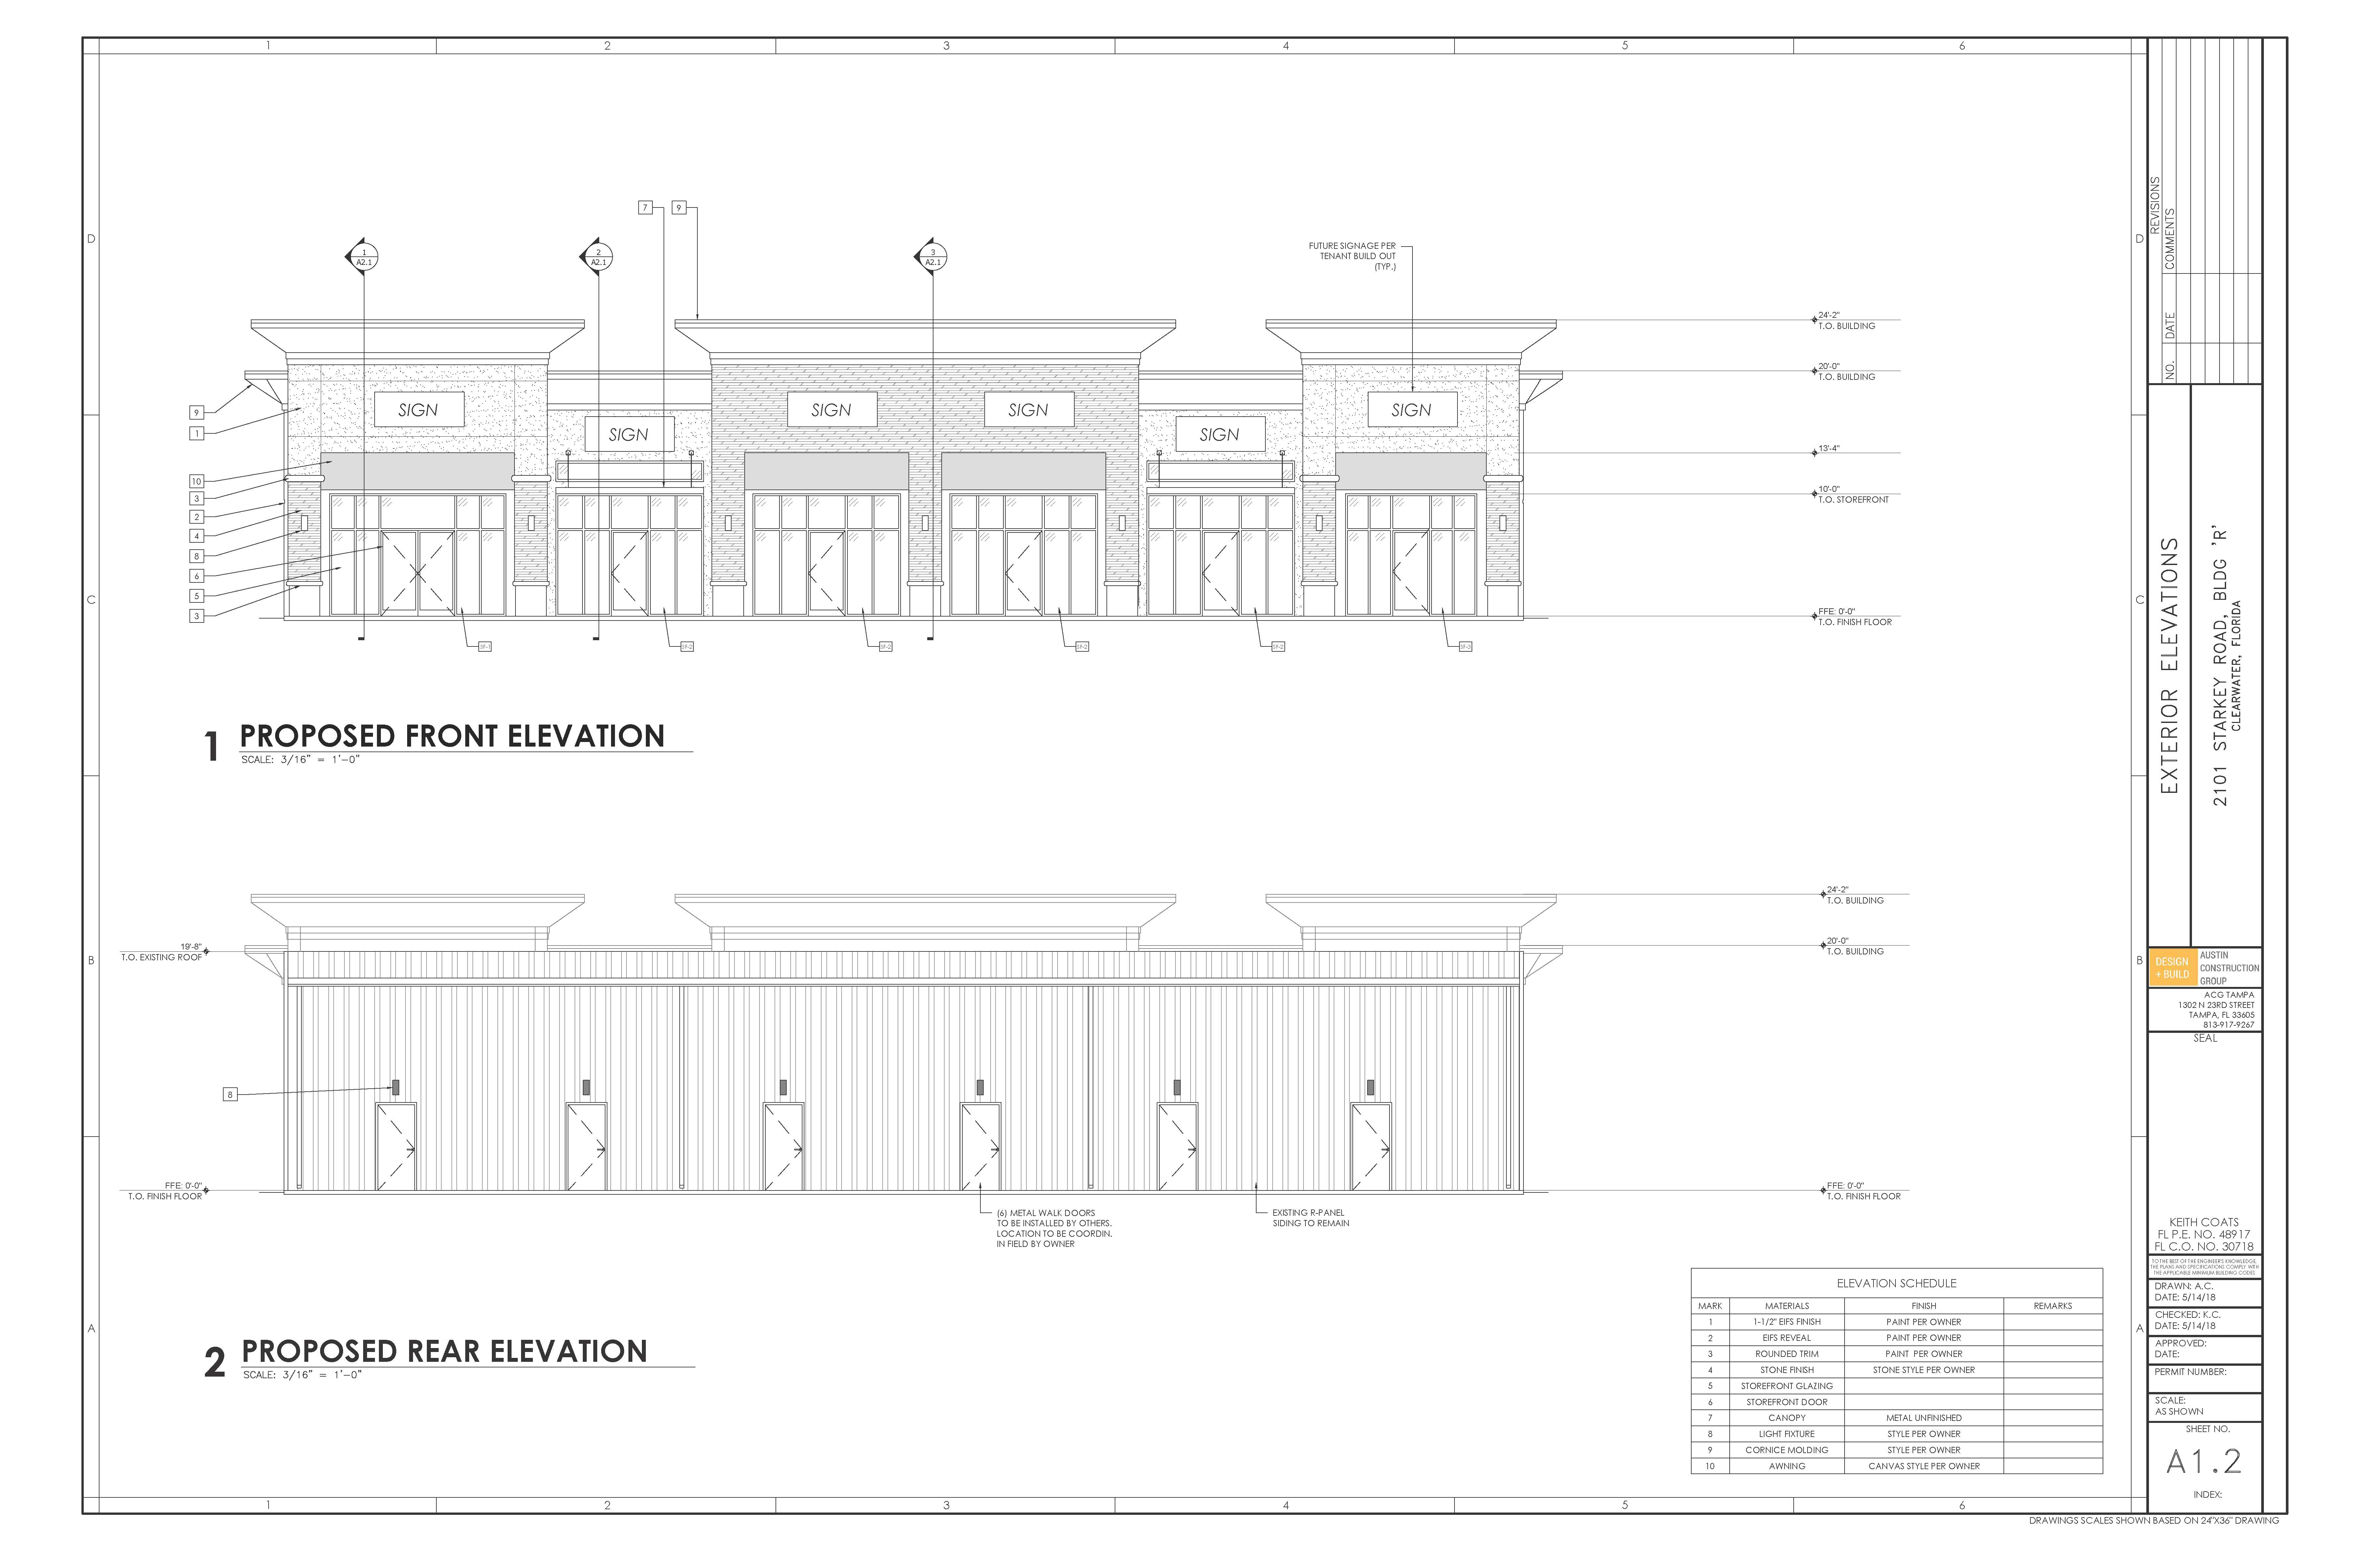 100' x 80' Building Drawings-A1.2